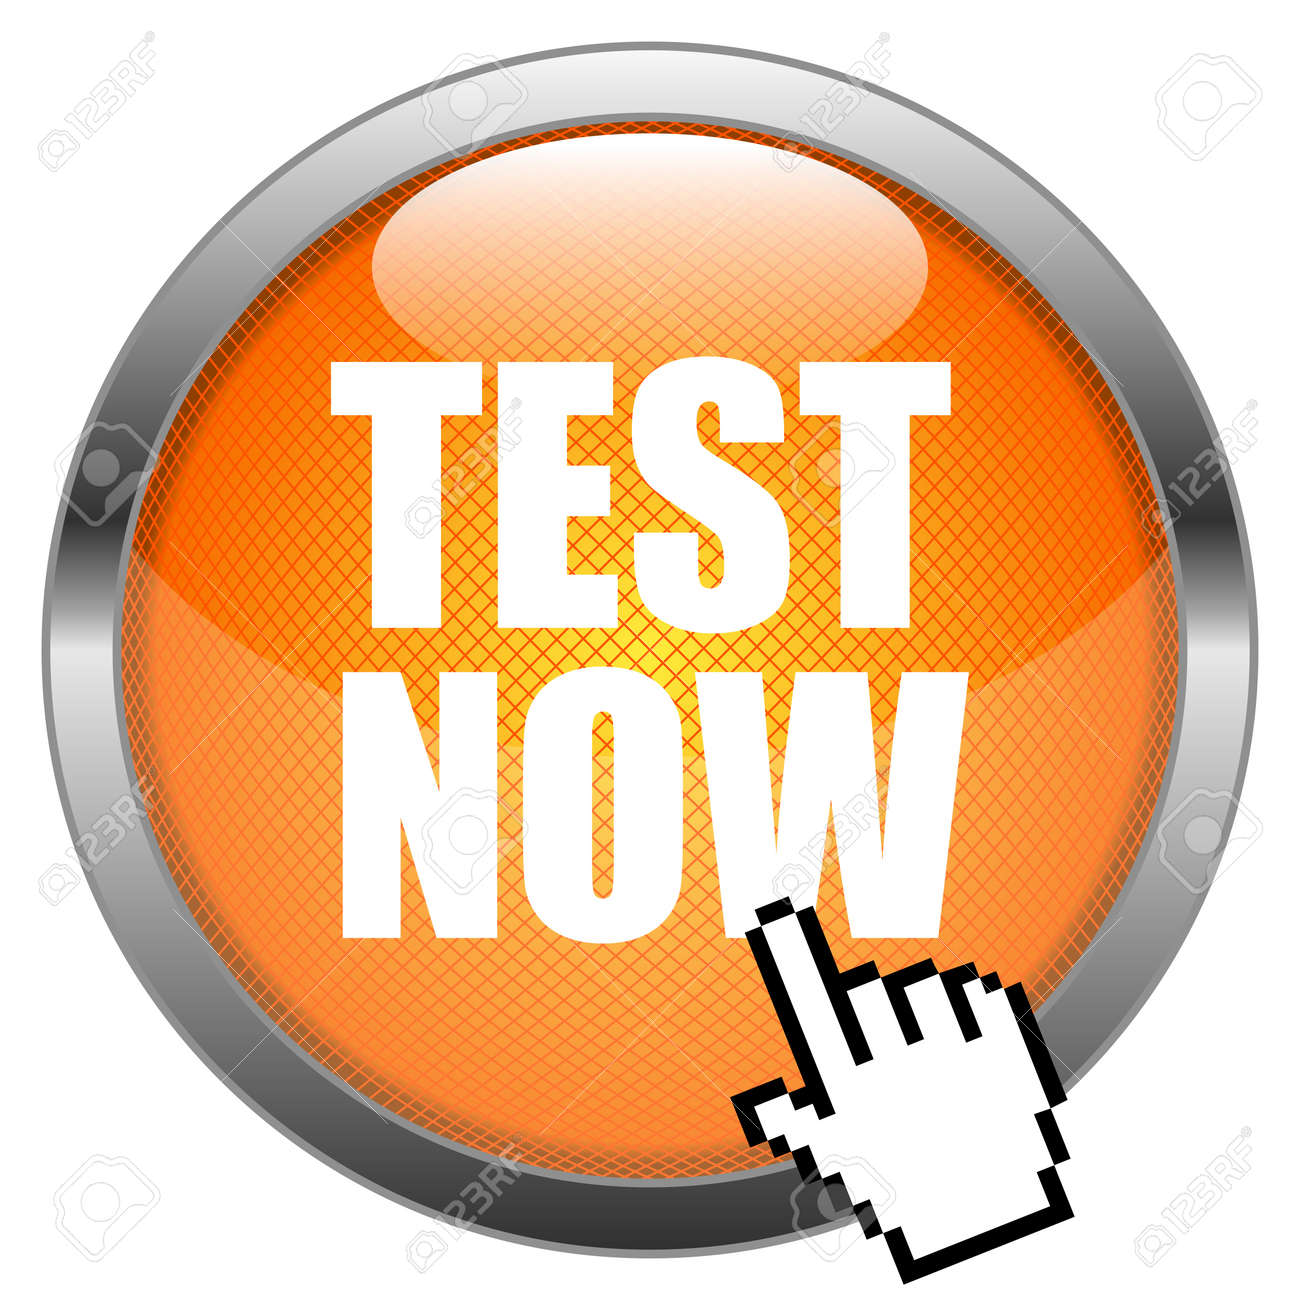 Button Test Now Royalty Free Cliparts, Vectors, And Stock Illustration.  Image 16852545.